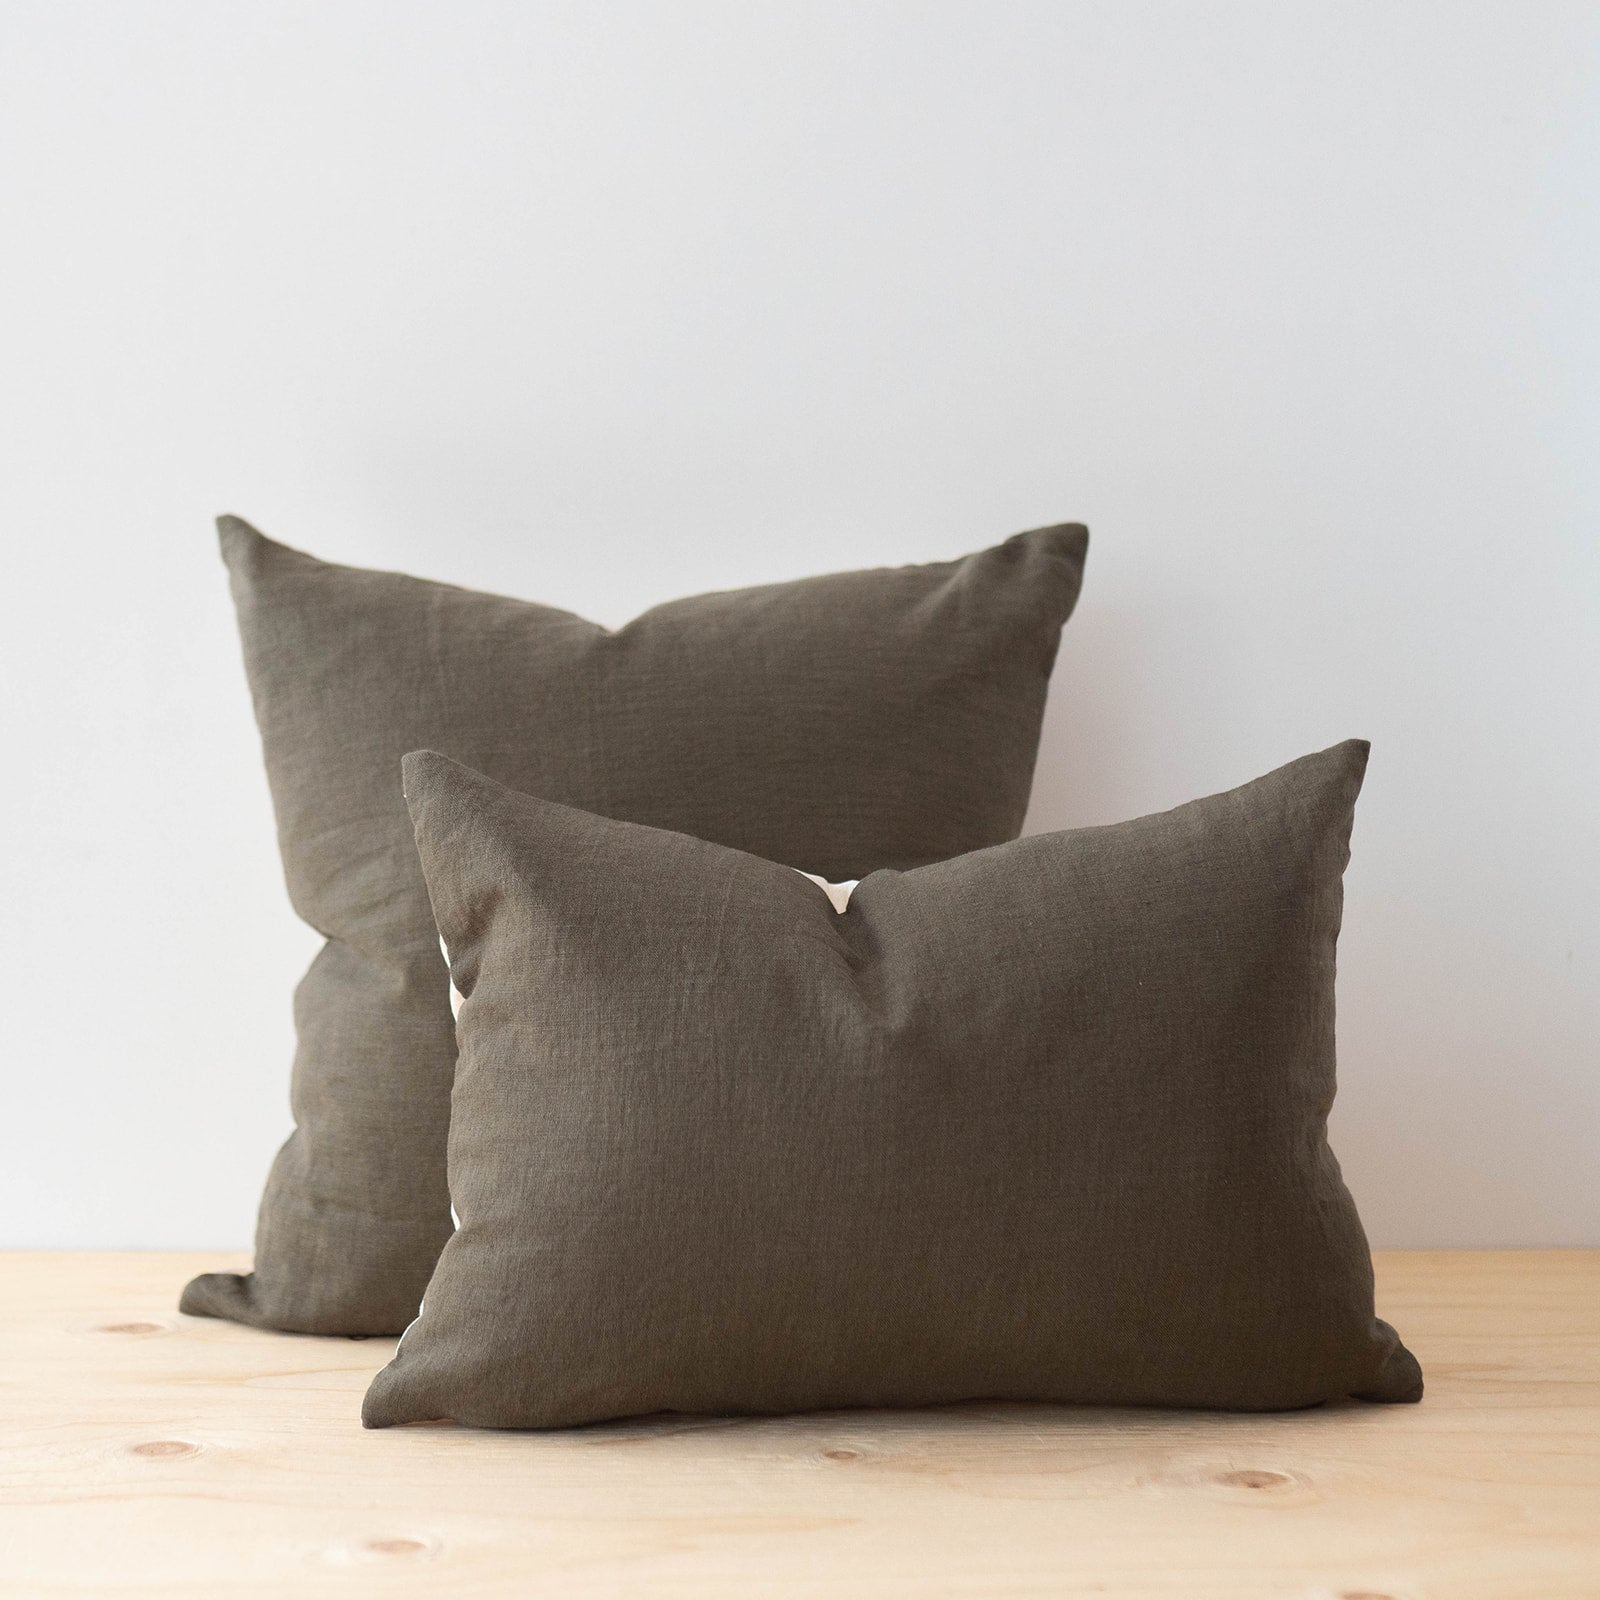 Ochre Linen Pillow